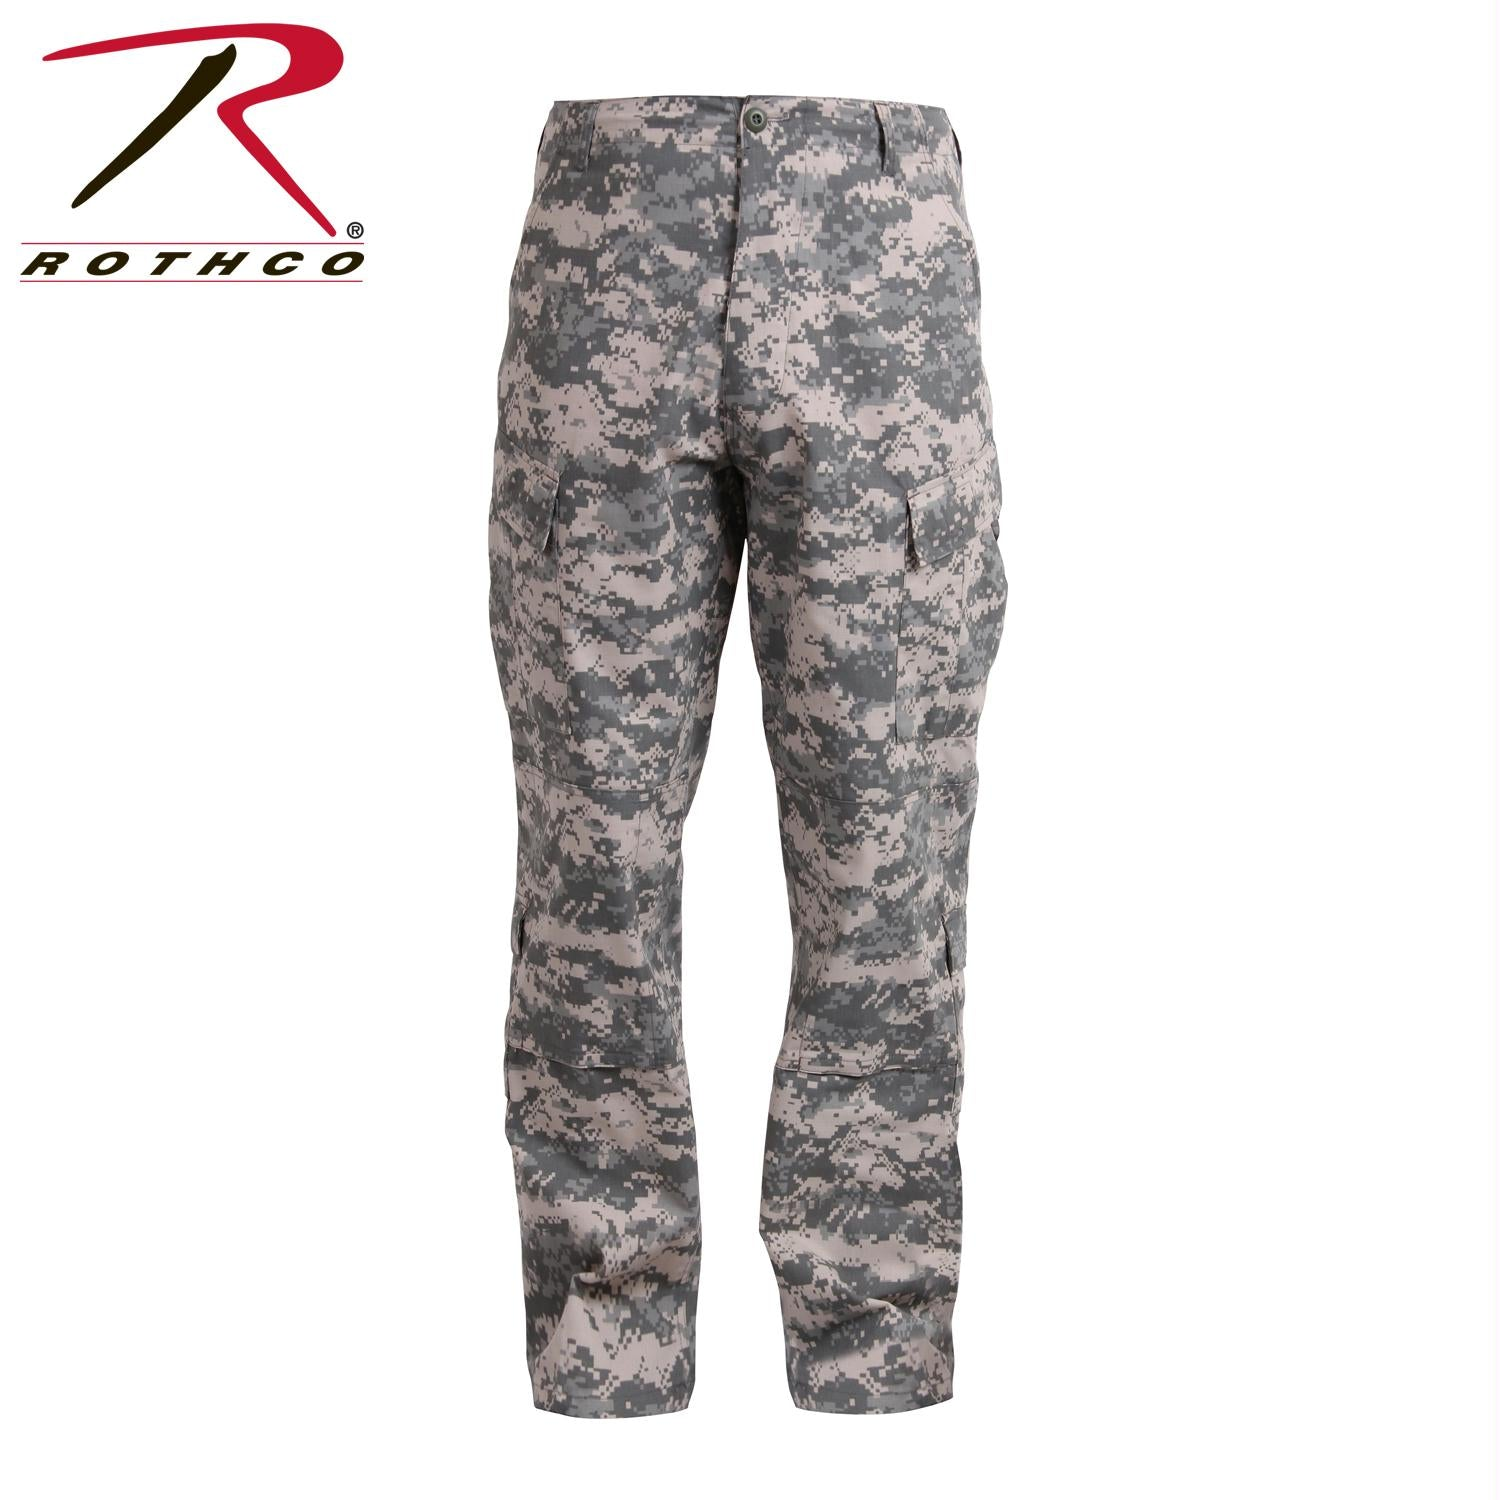 Tactical ACU Pants Rip-Stop Army Combat Uniform Fatigues - ACU Digital Camo / XL